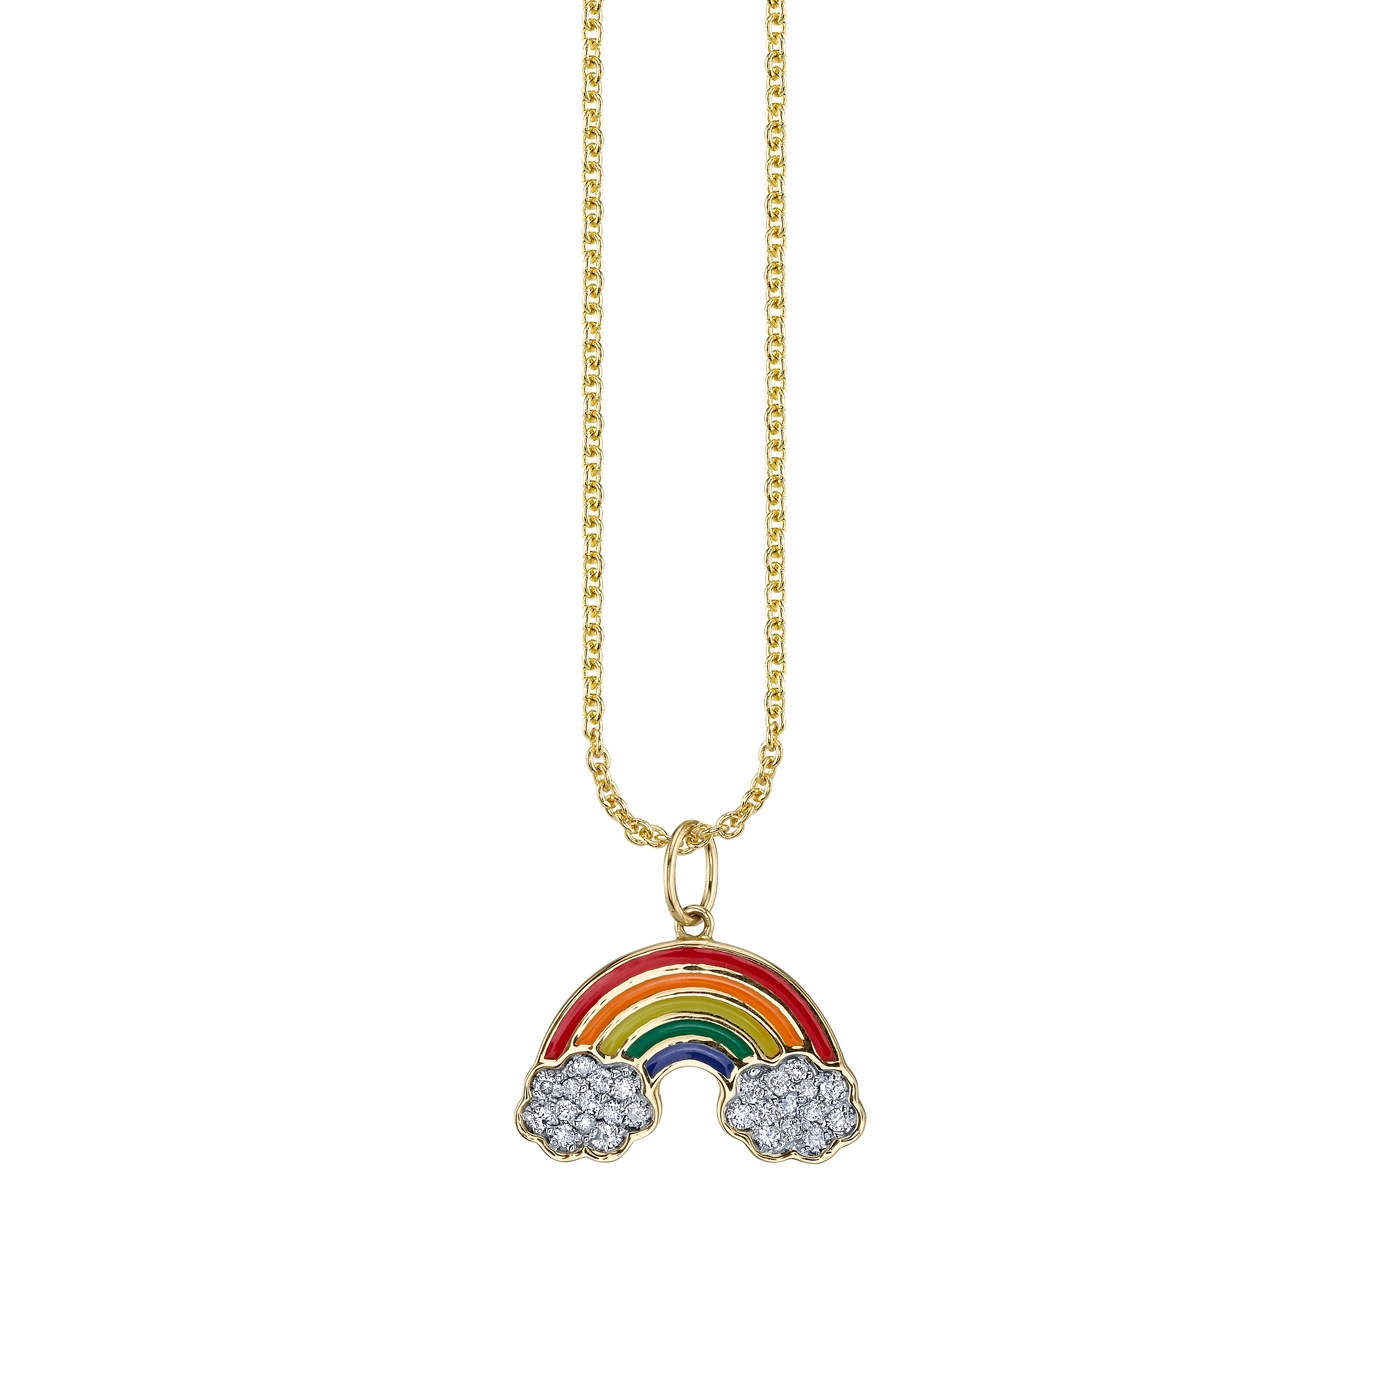 SYDNEY EVAN 14CT YELLOW GOLD ENAMEL RAINBOW CHARM NECKLACE